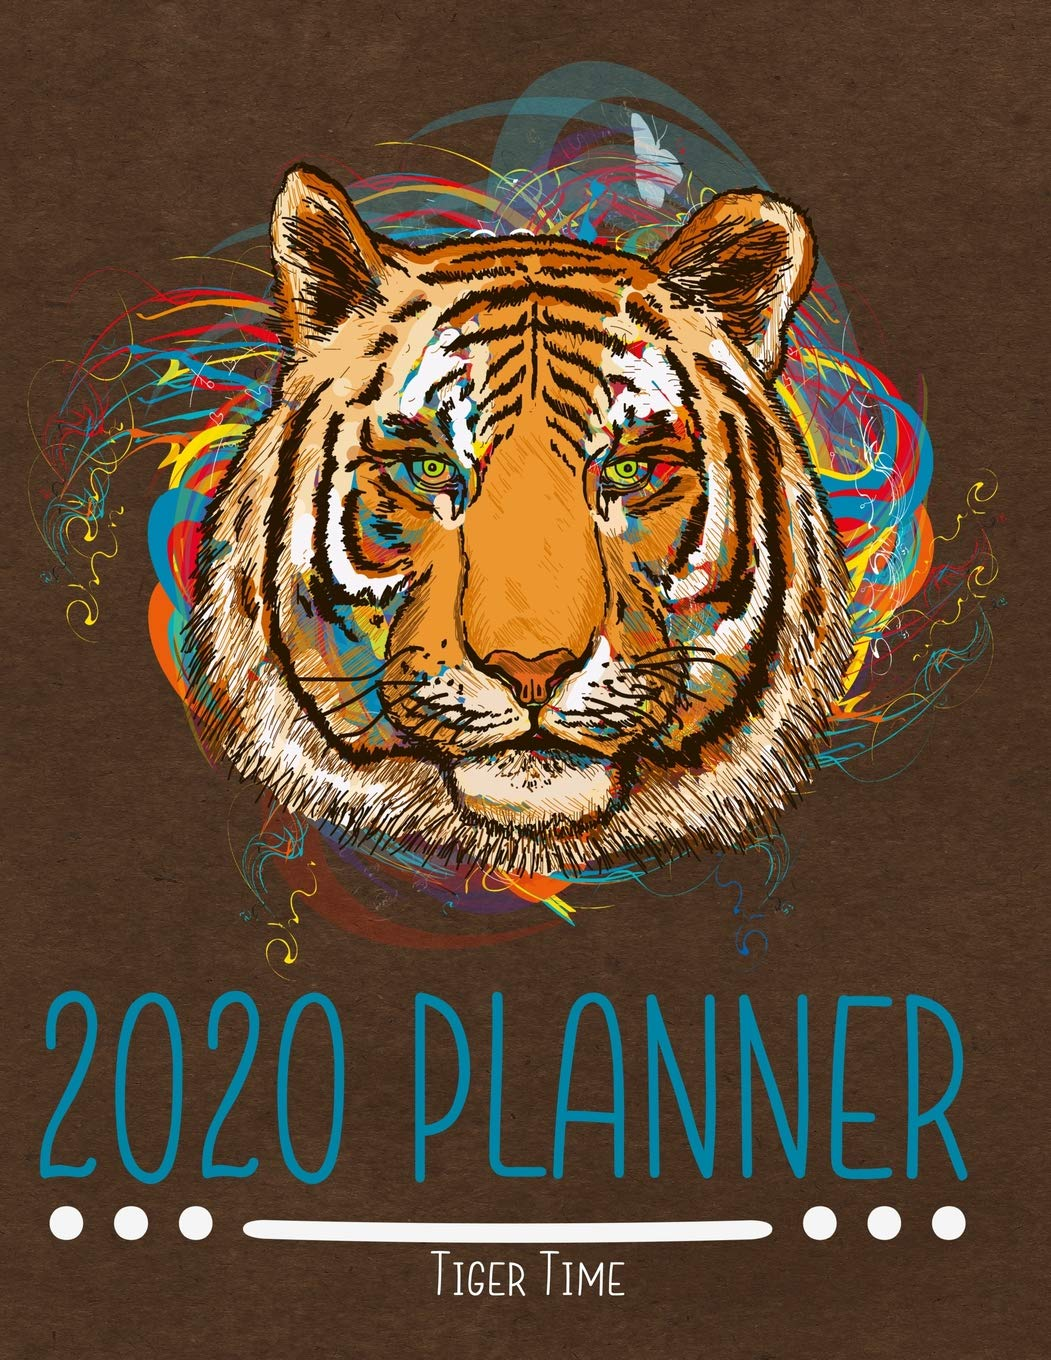 Tigers Home Opener 2020.2020 Planner Tiger Time Planners For Home School And